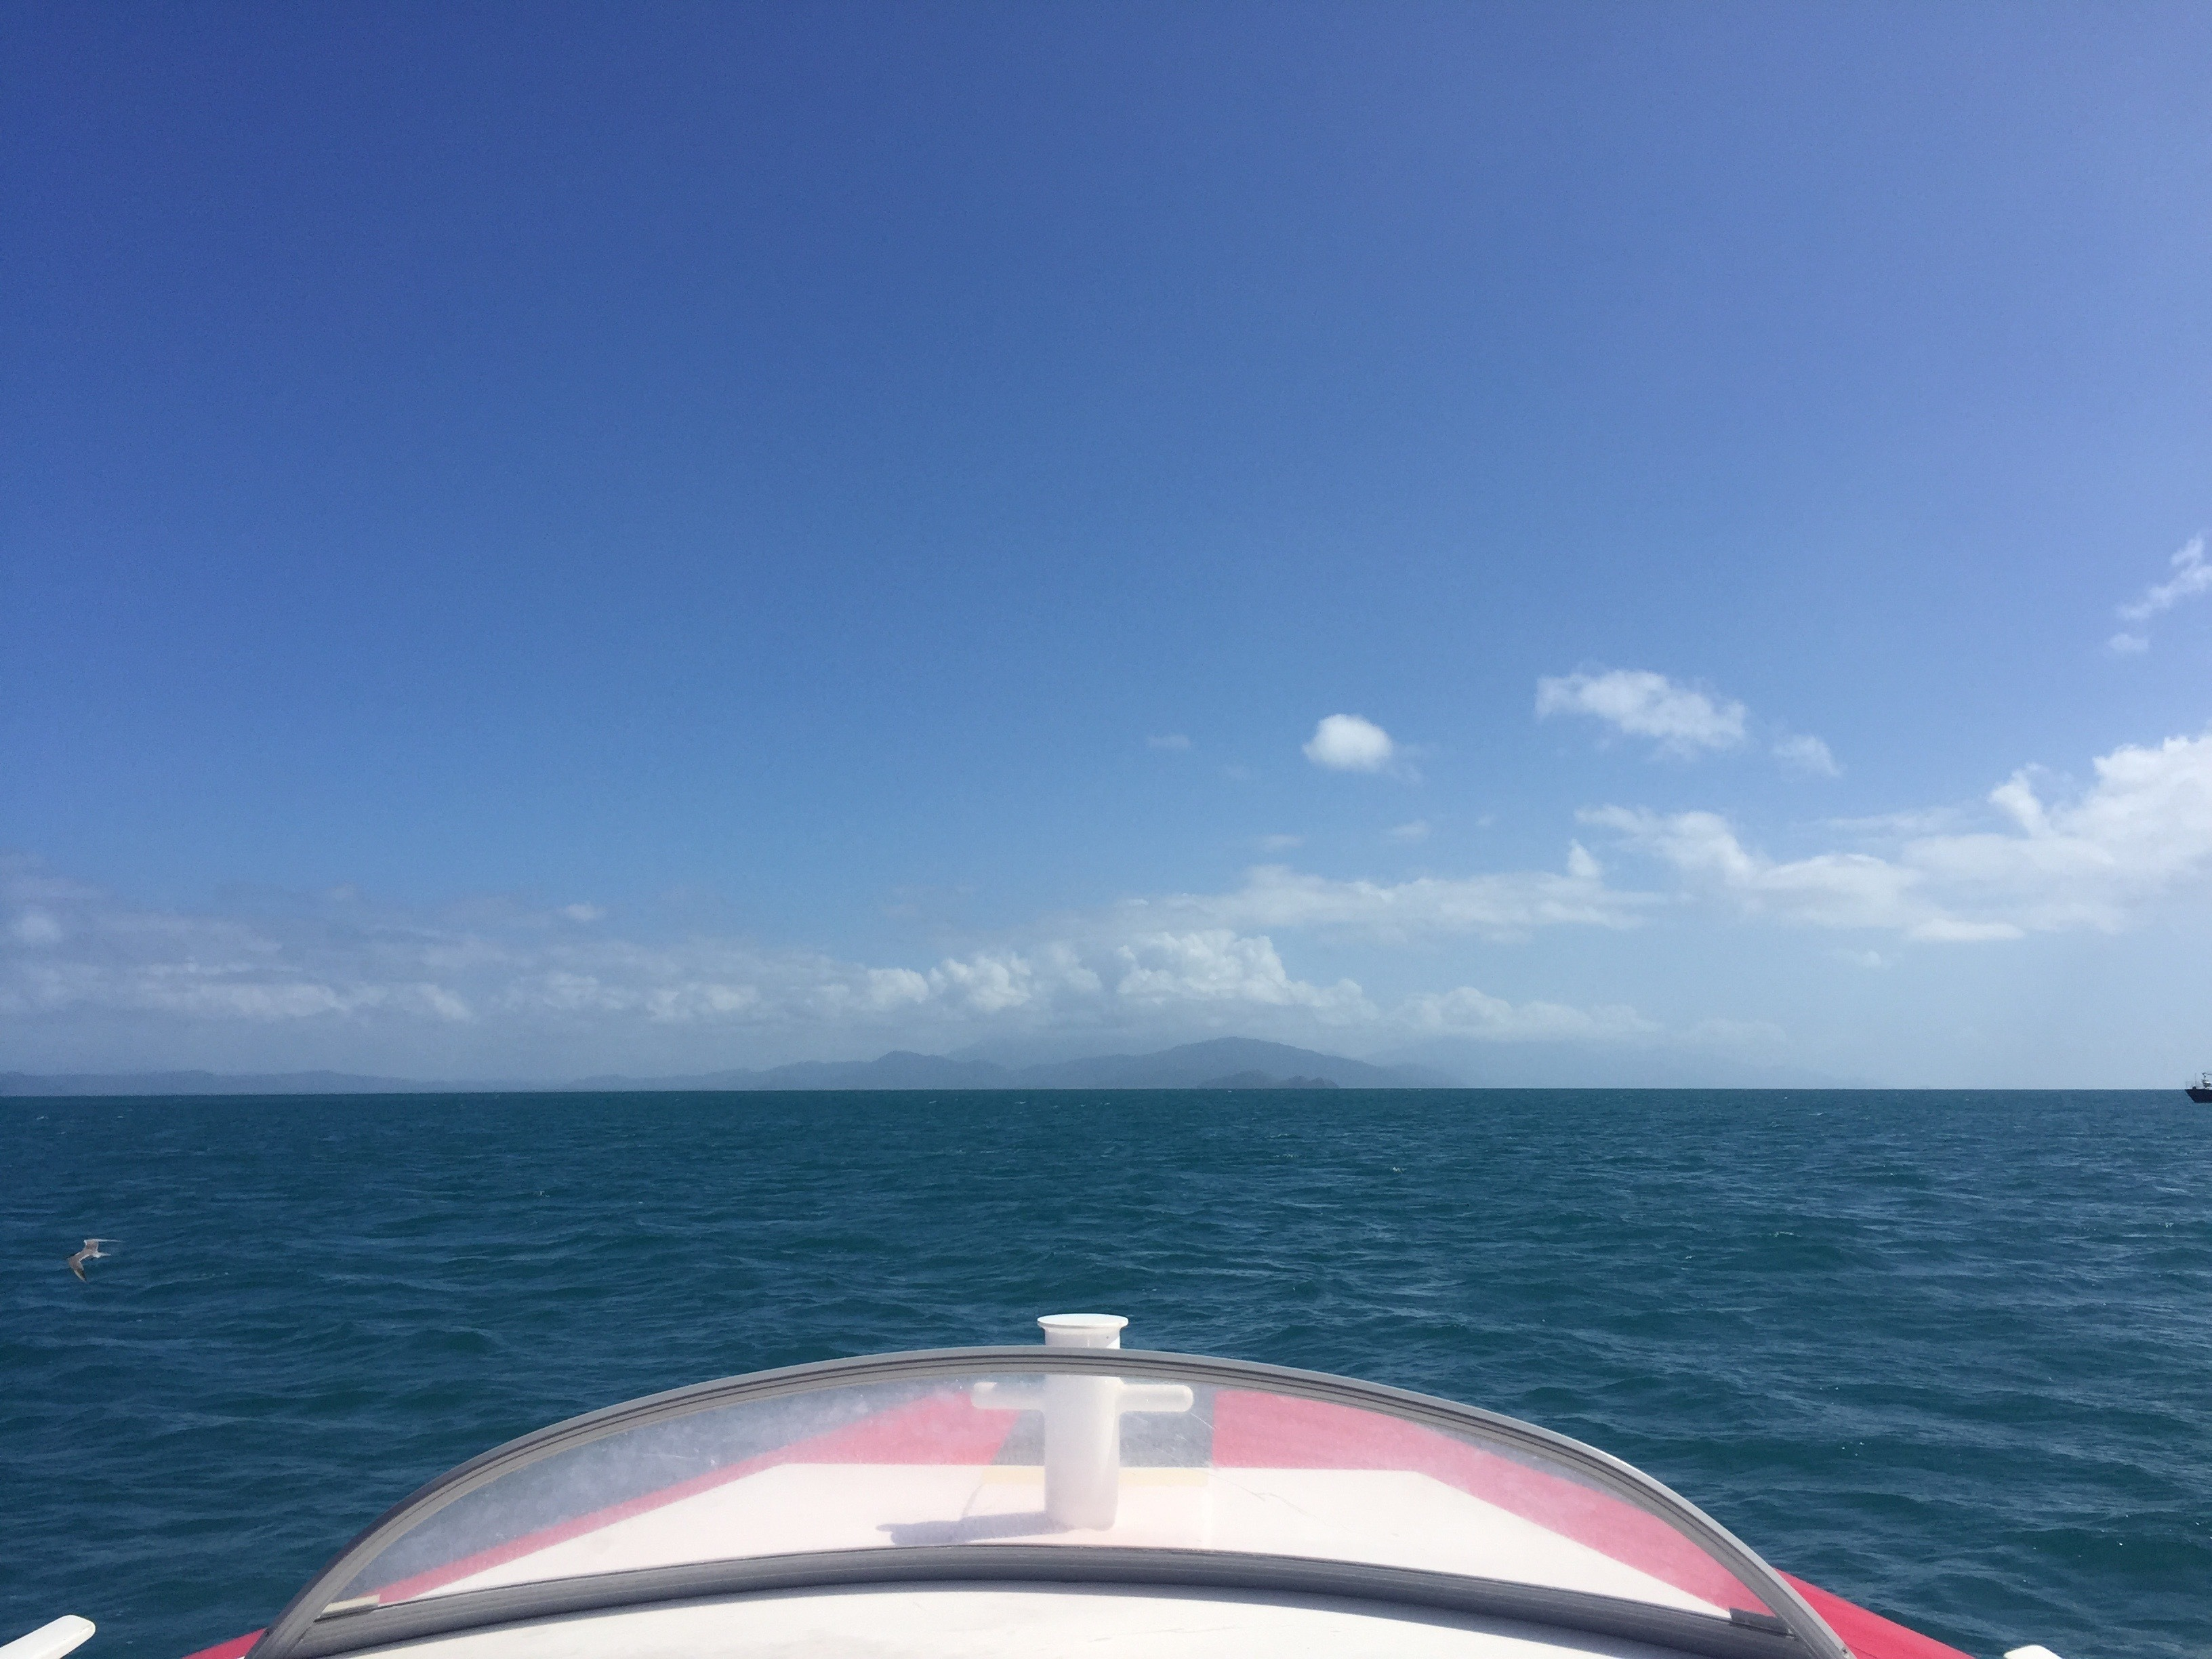 Floating by Low Isles in the Great Barrier Reef - Queensland